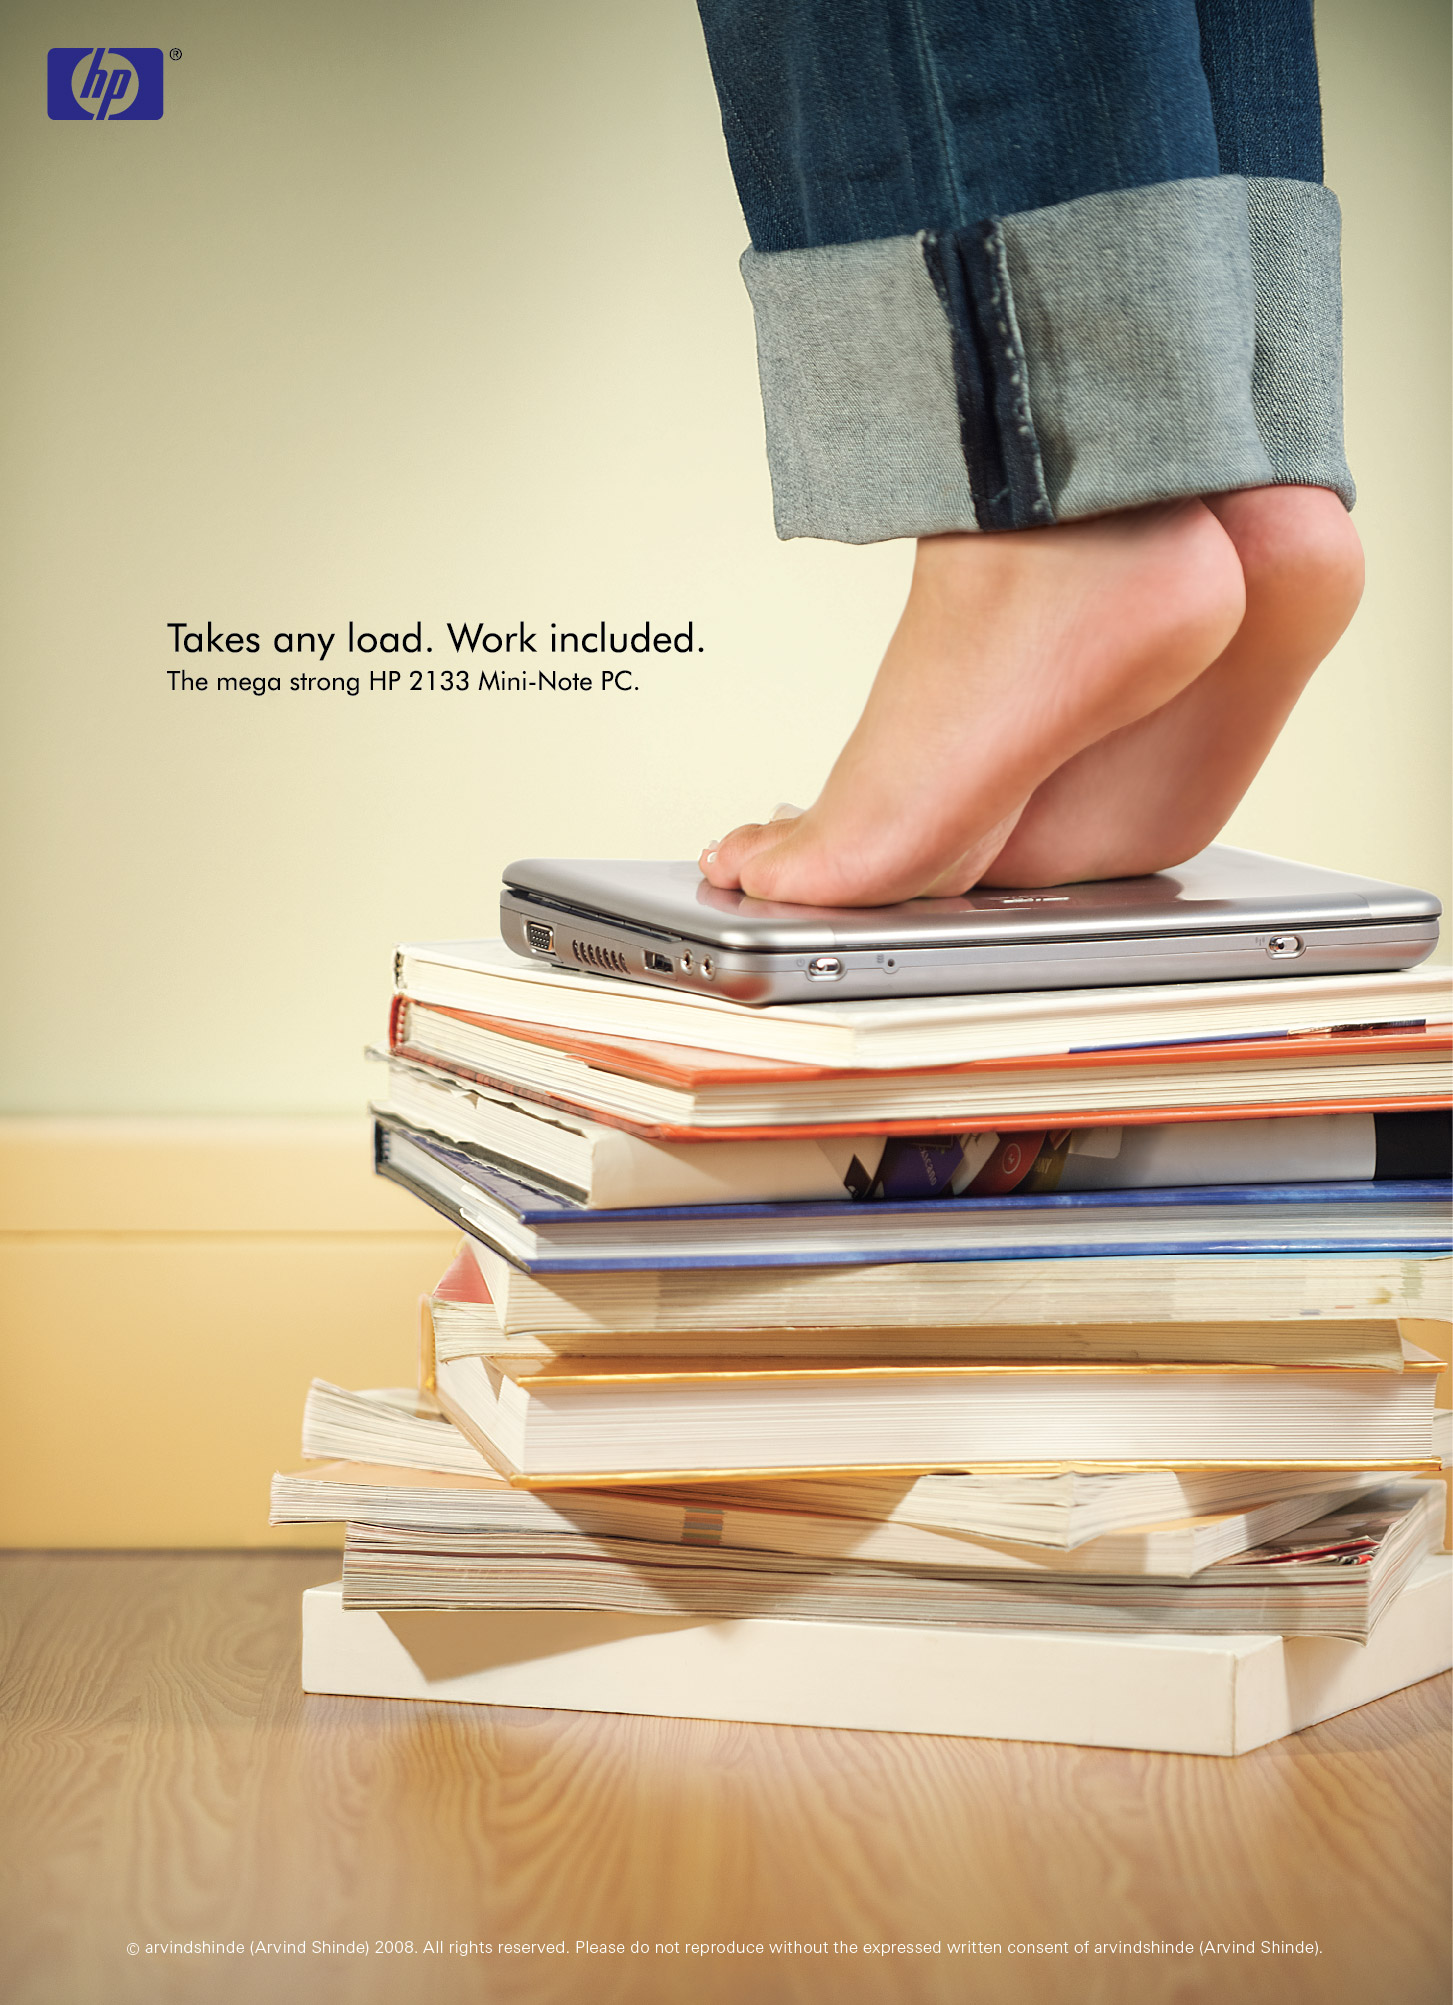 HP mini-note print ad middle east